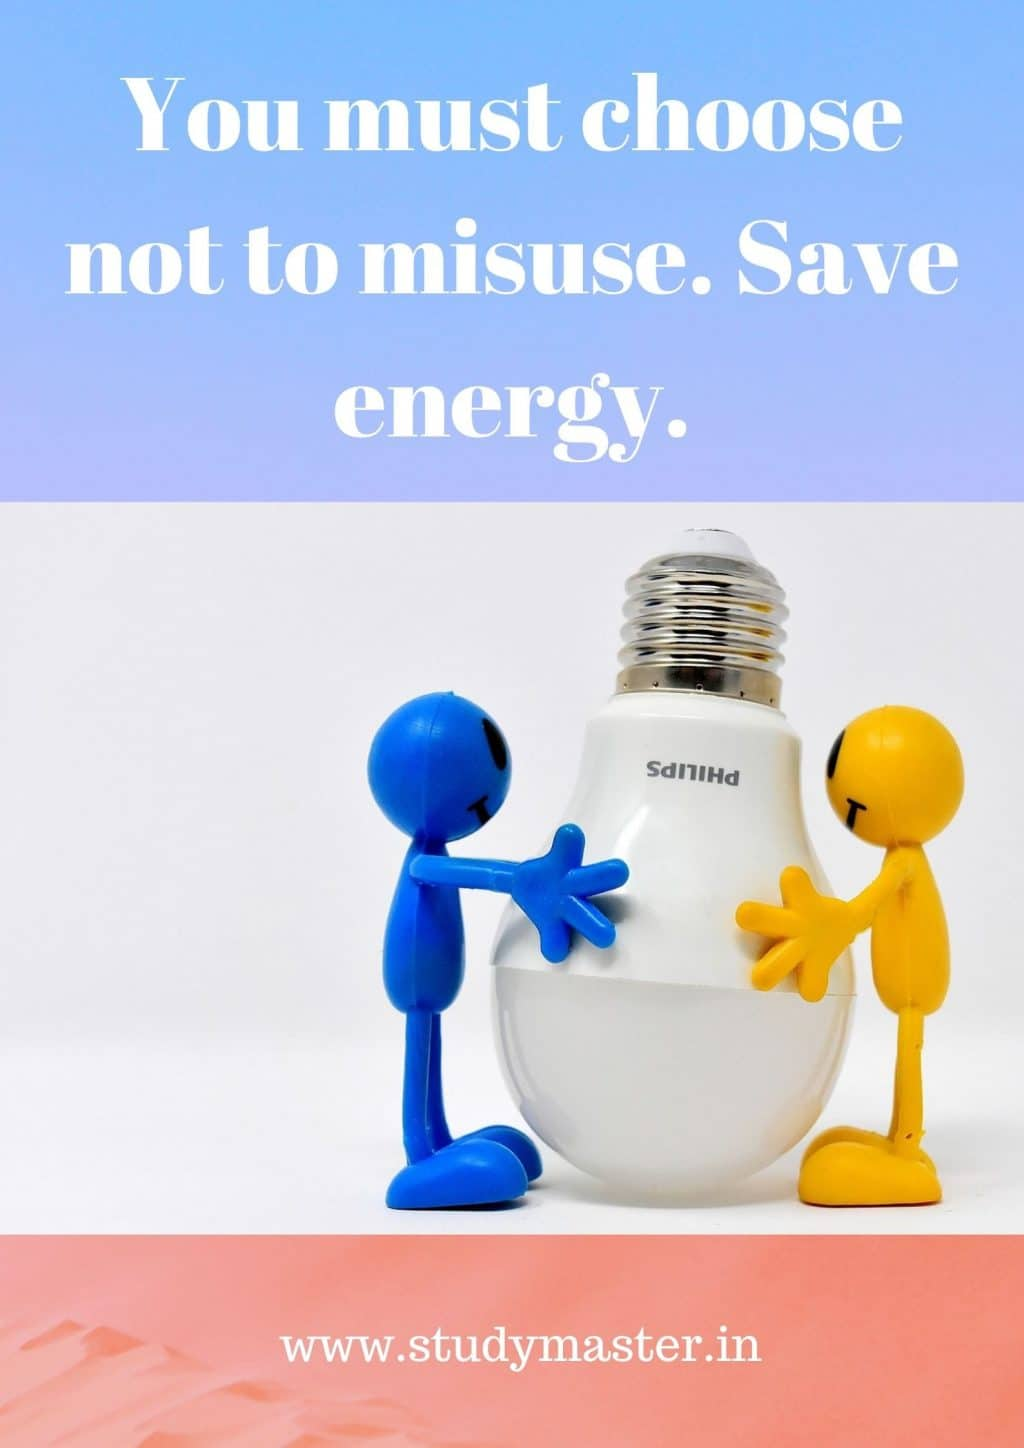 save energy painting